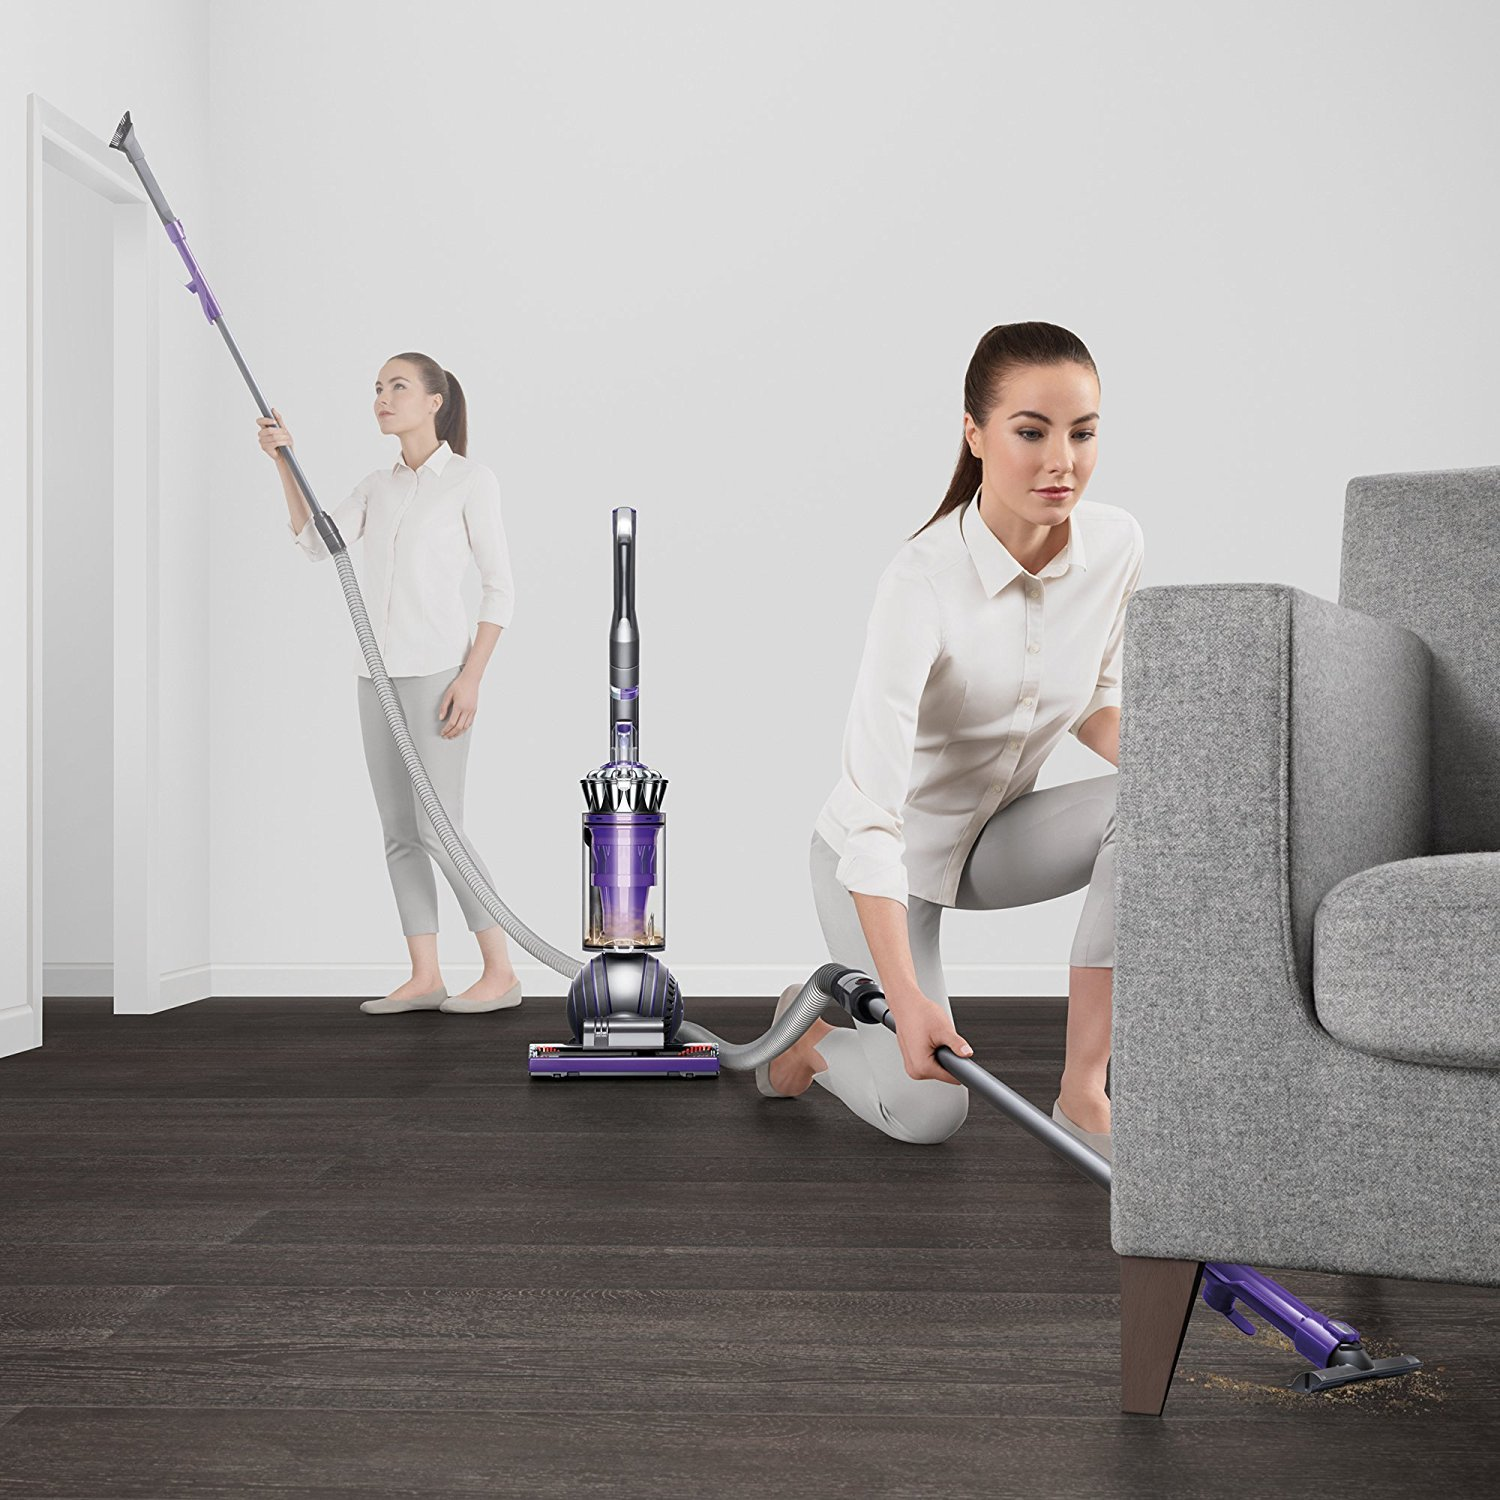 Dyson Ball Animal 2 Upright Vacuum, Iron/Purple (Certified Refurbished) by Dyson (Image #6)